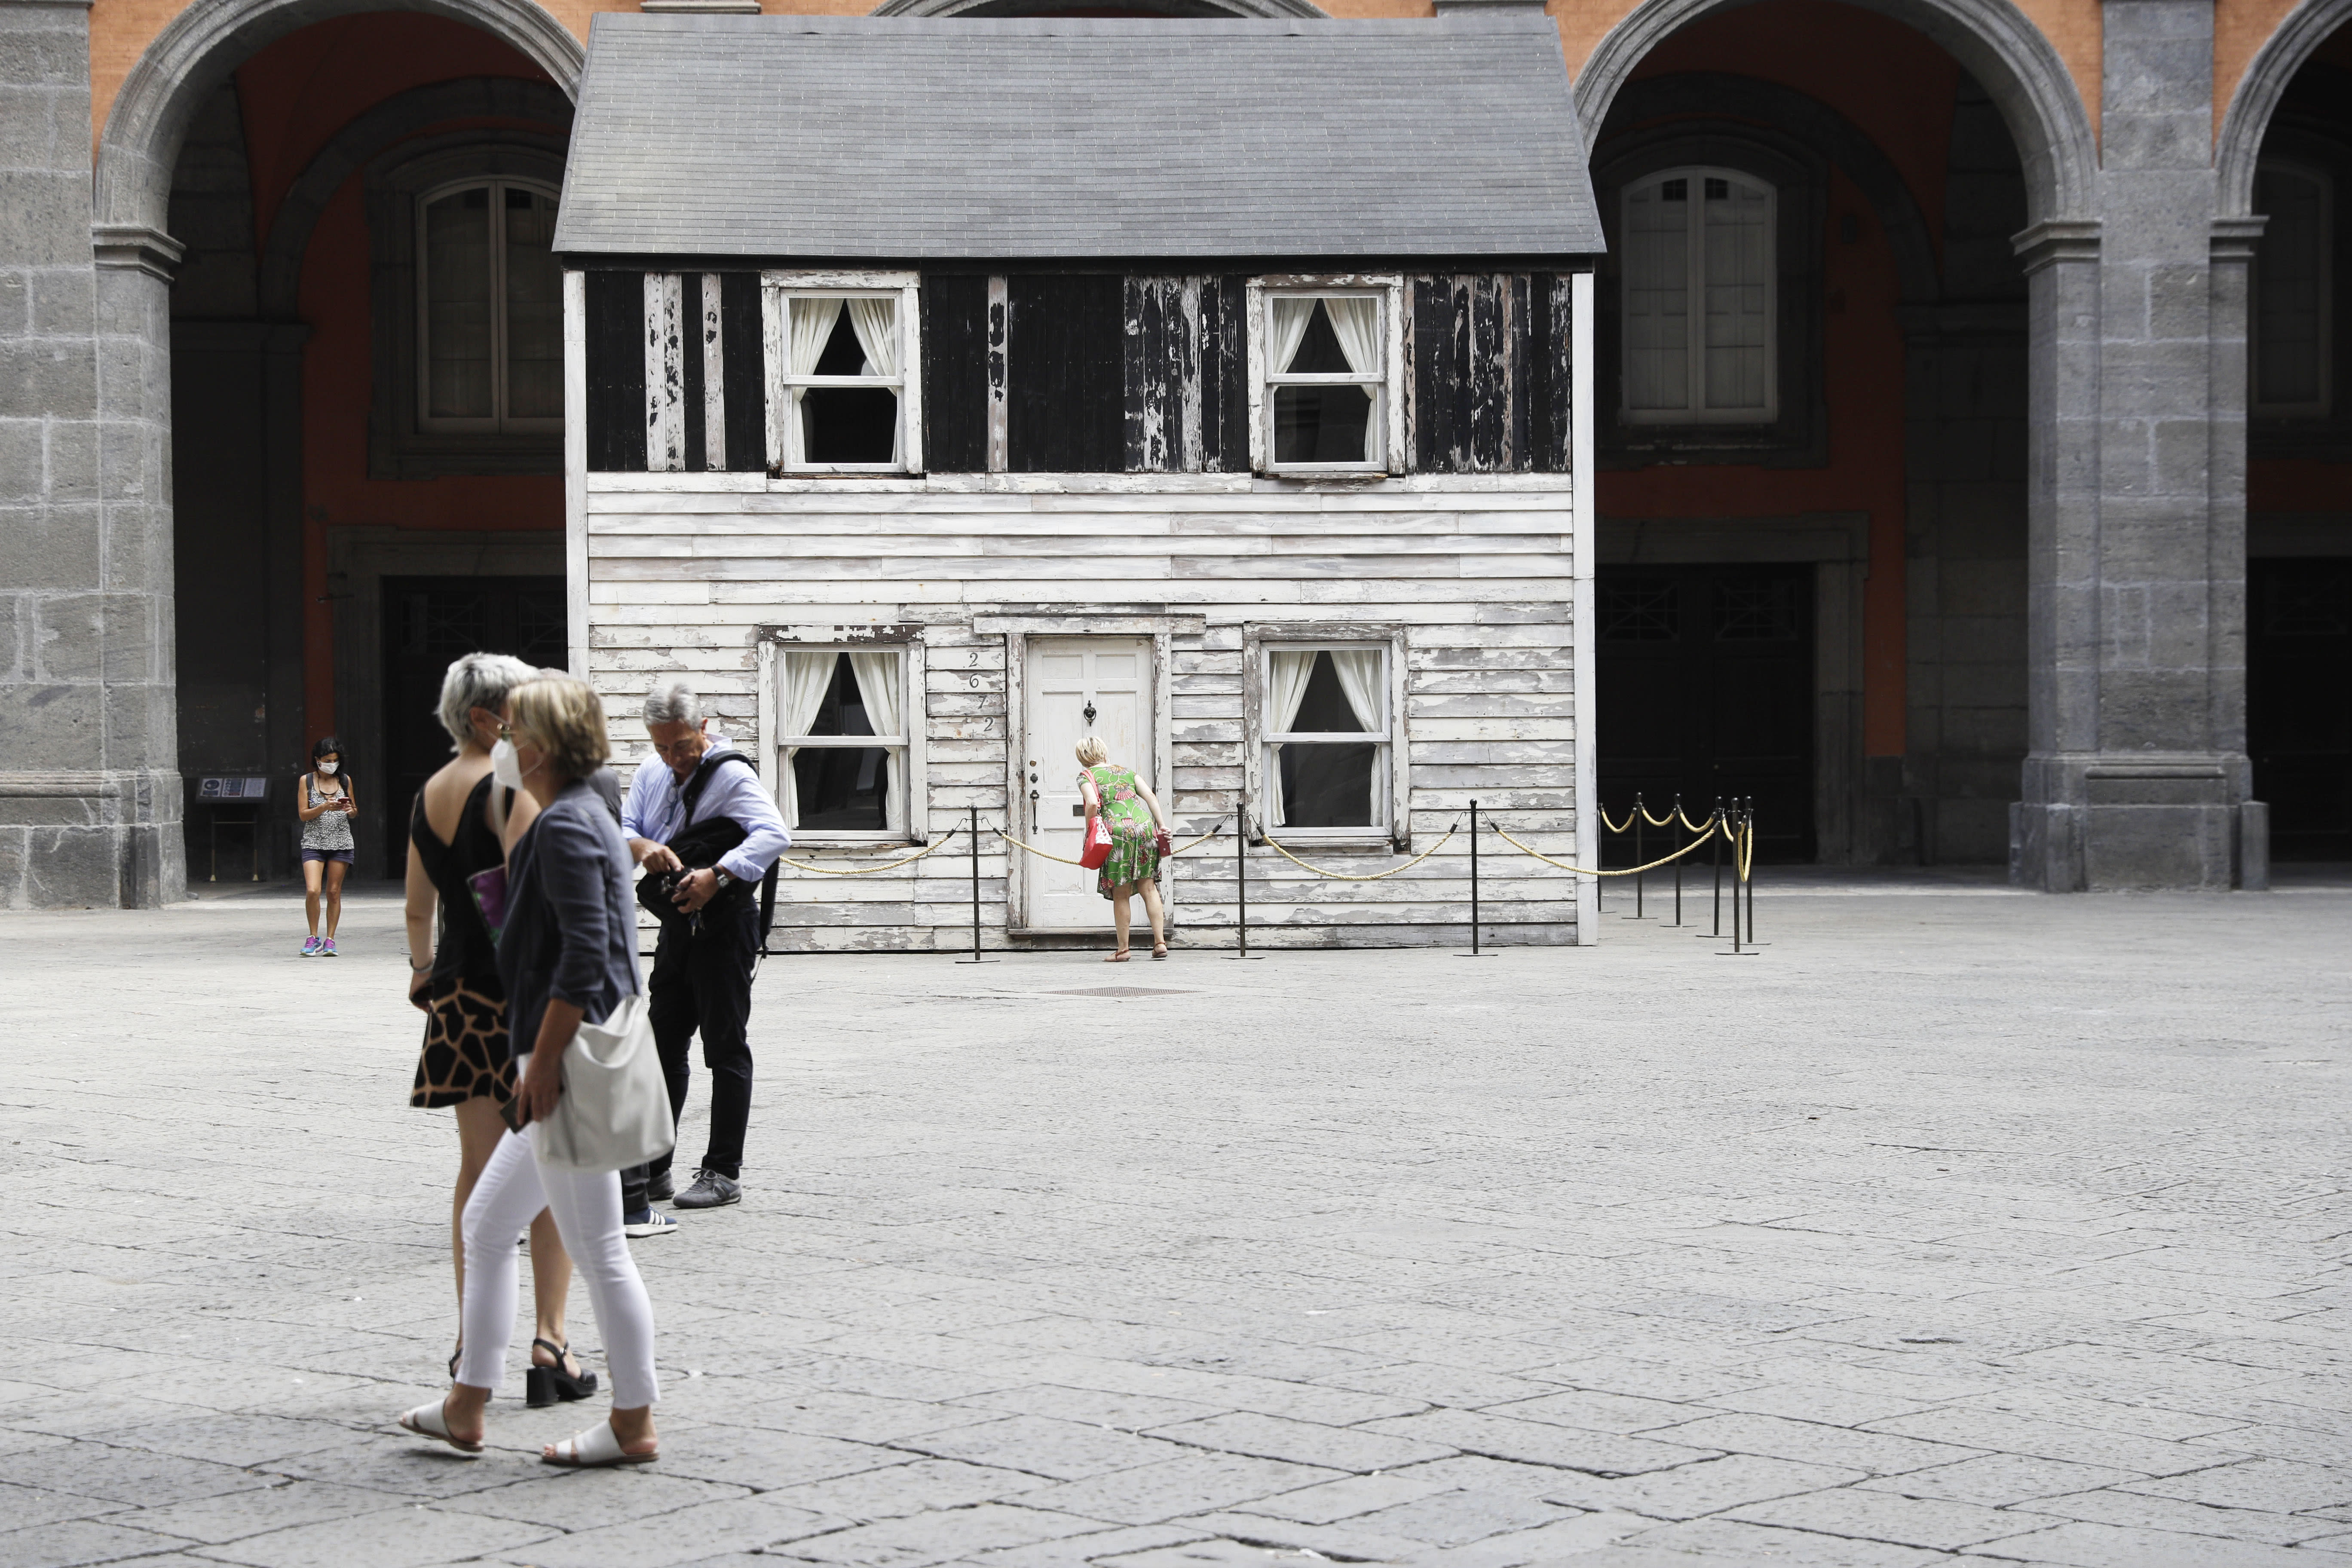 The house of U.S. civil rights campaigner Rosa Parks, rebuilt by artist Ryan Mendoza, is on display in Naples, Italy, Tuesday, Sept. 15, 2020. The rundown, paint-chipped Detroit house where Parks took refuge after her famous bus boycott is going on display in a setting that couldn't be more incongruous: the imposing central courtyard of the 18th century Royal Palace. (AP Photo/Gregorio Borgia)